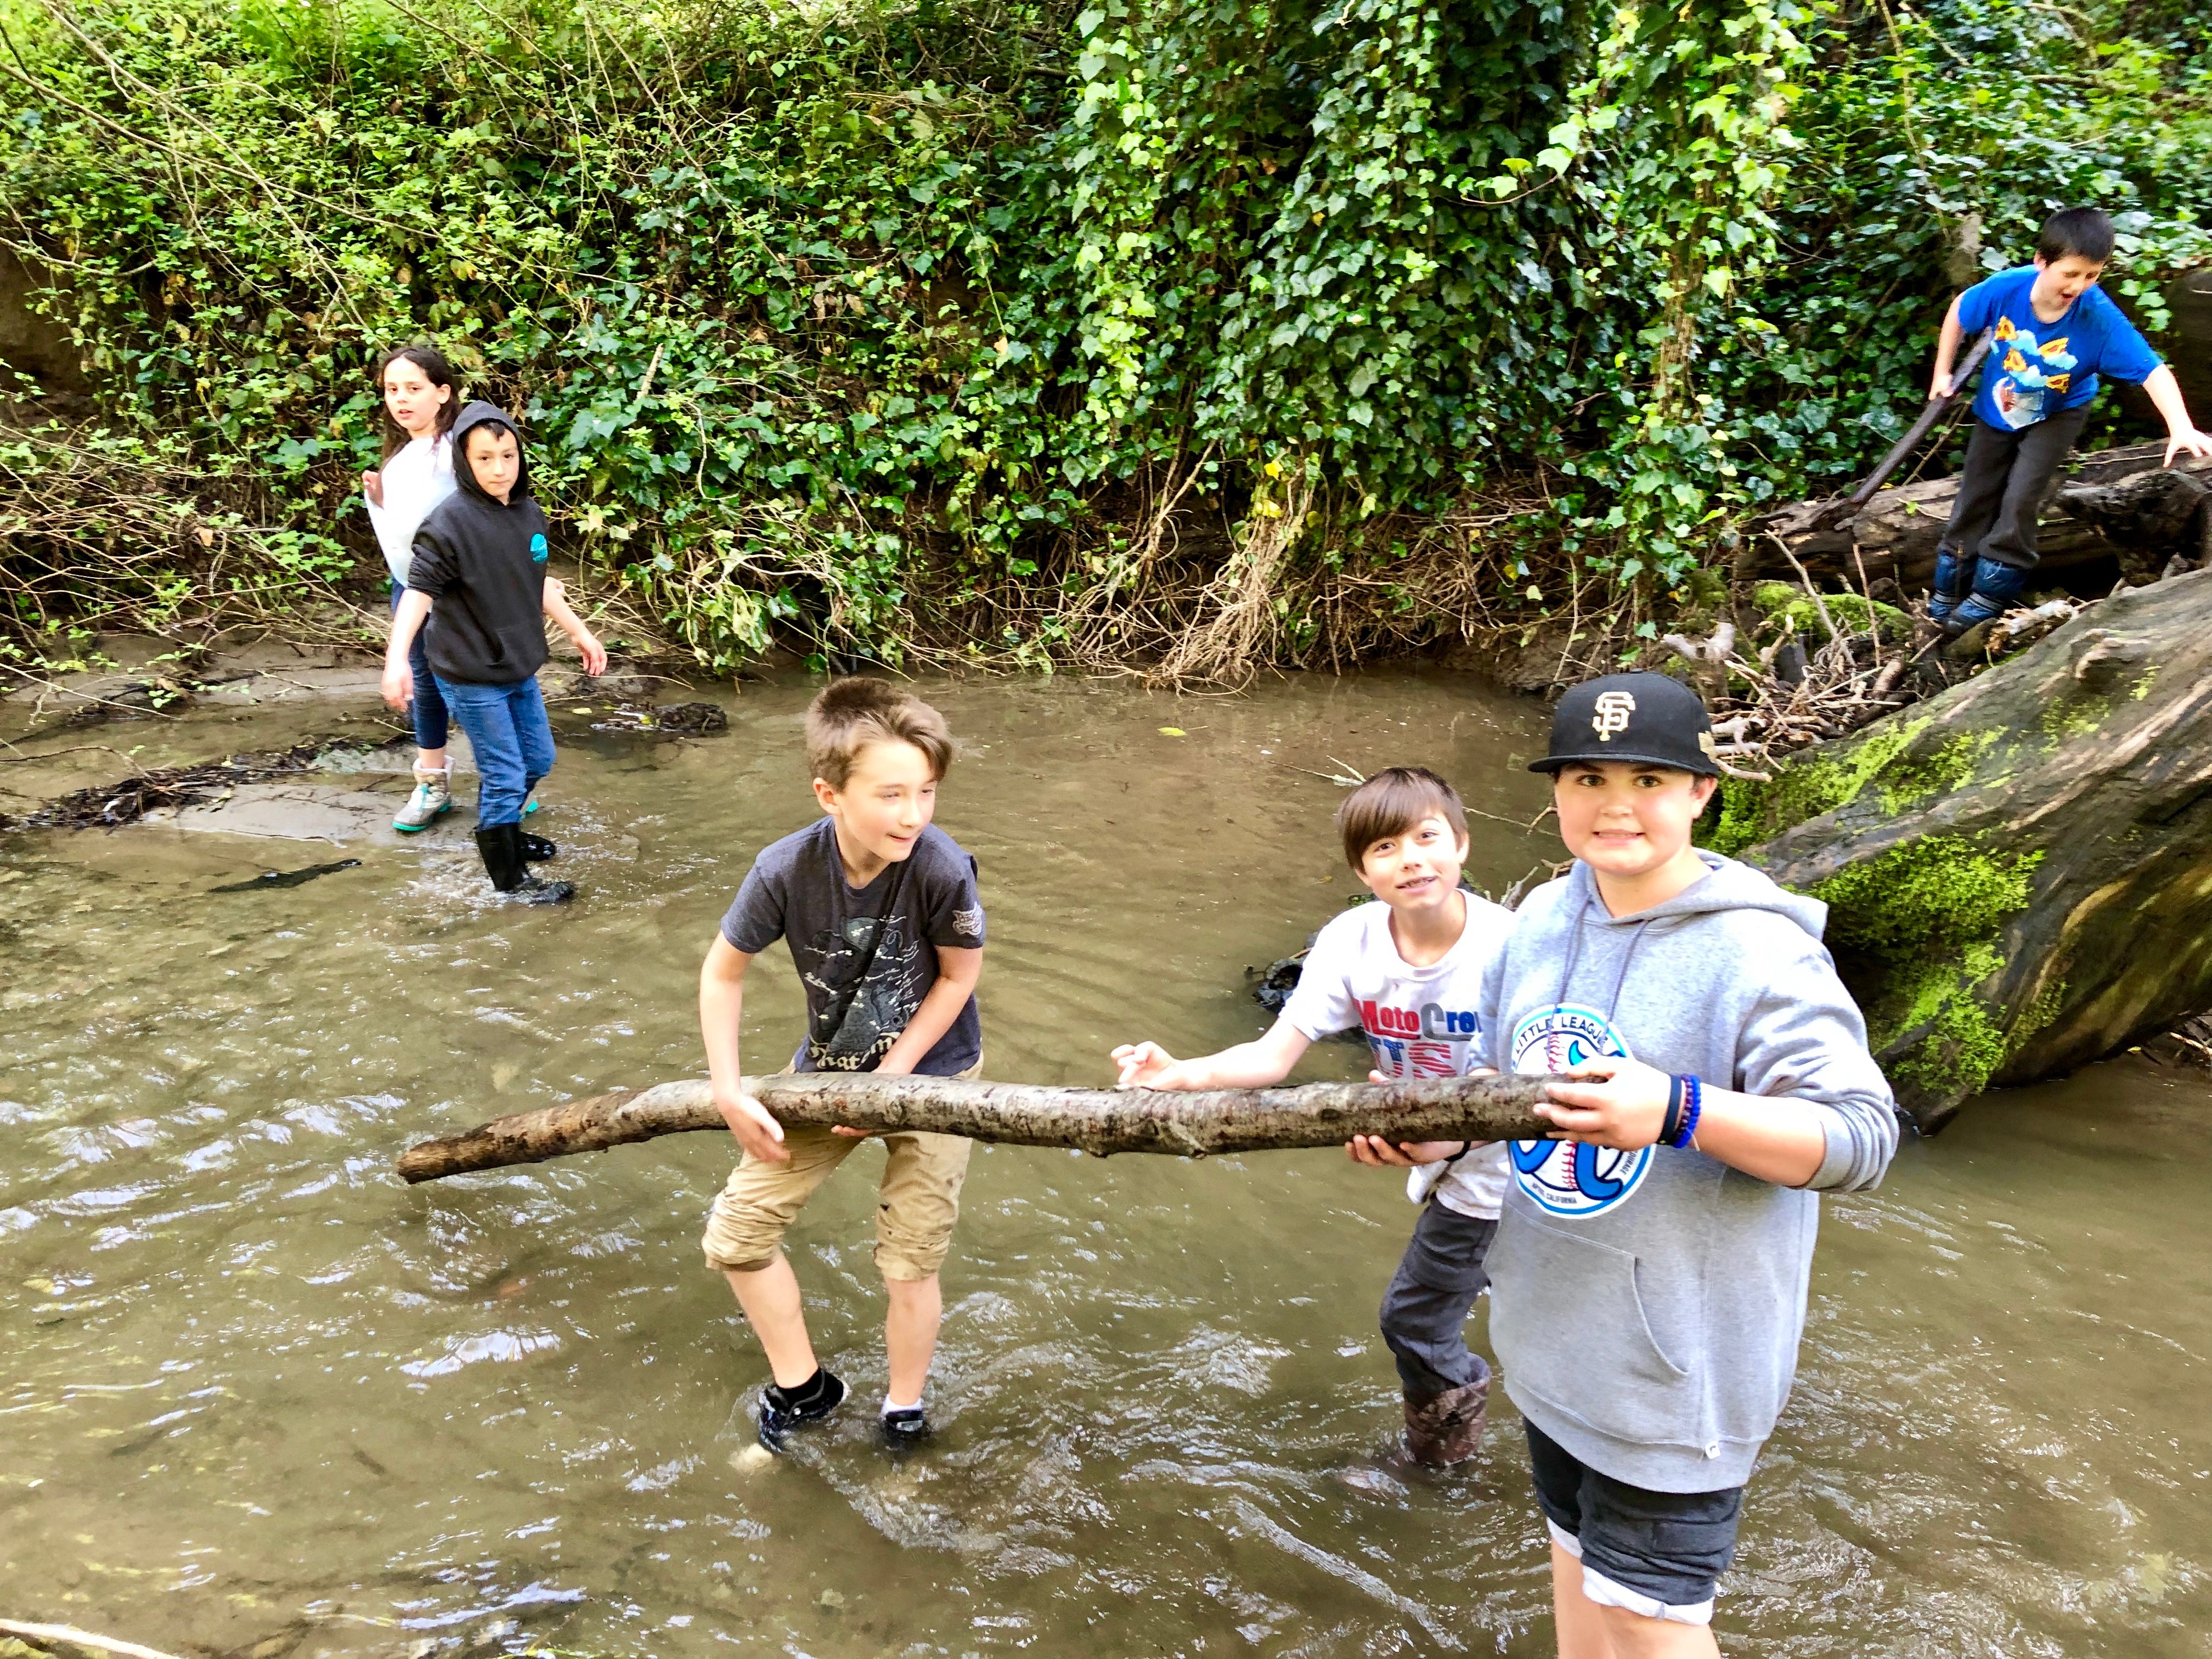 Working together at the creek